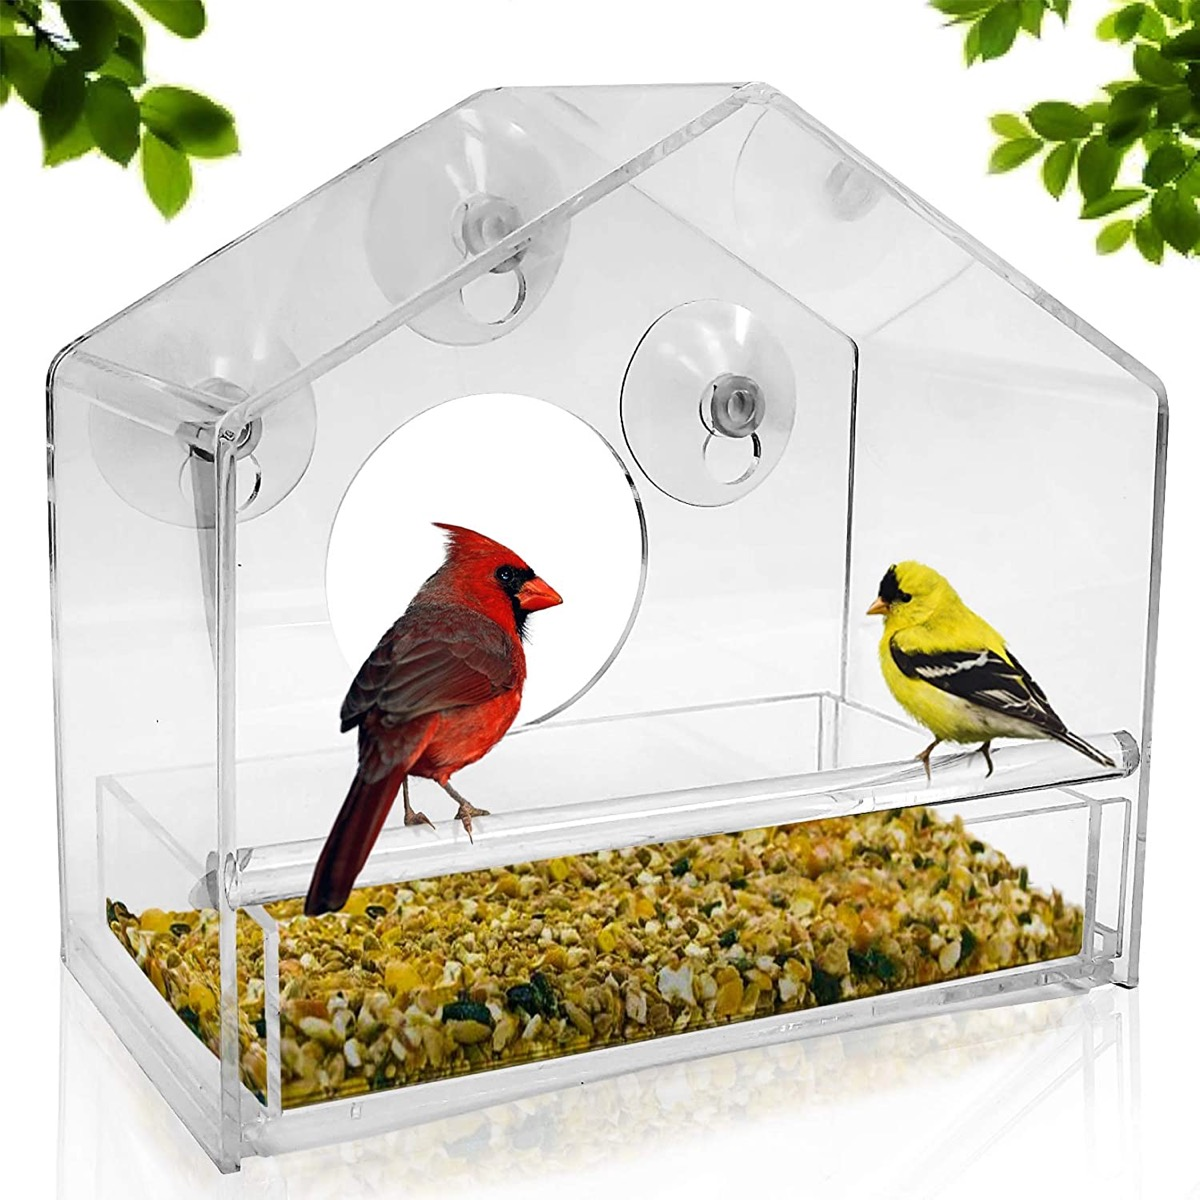 clear bird feeder with a red and yellow bird inside